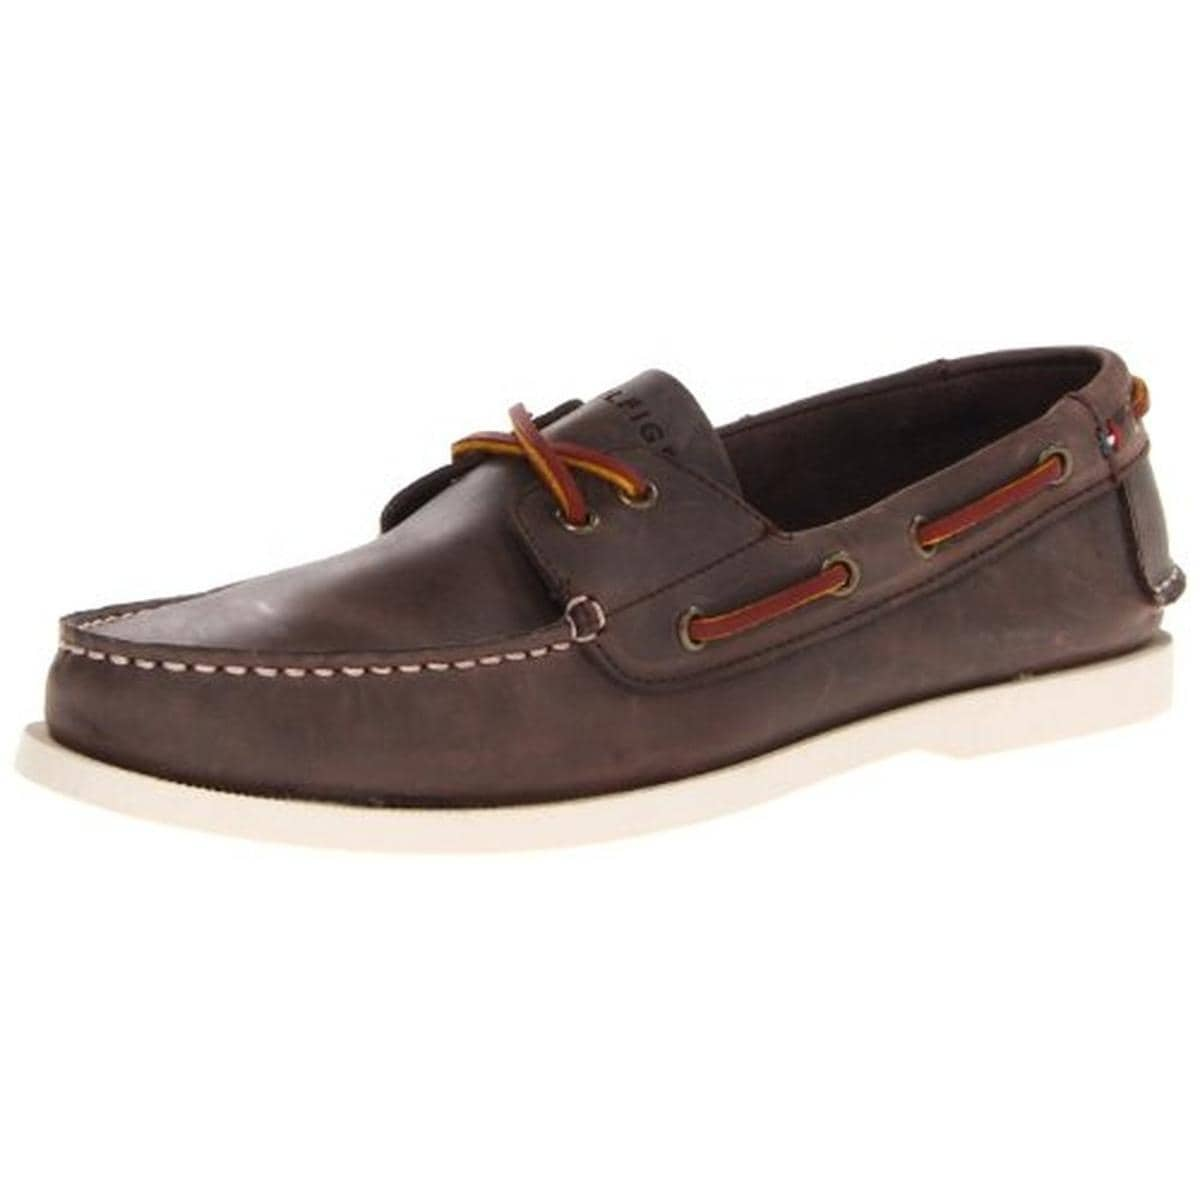 54ec7f71b Shop Tommy Hilfiger Mens Bowman Boat Shoes Leather Moc-Toe - Free Shipping  Today - Overstock - 18612735